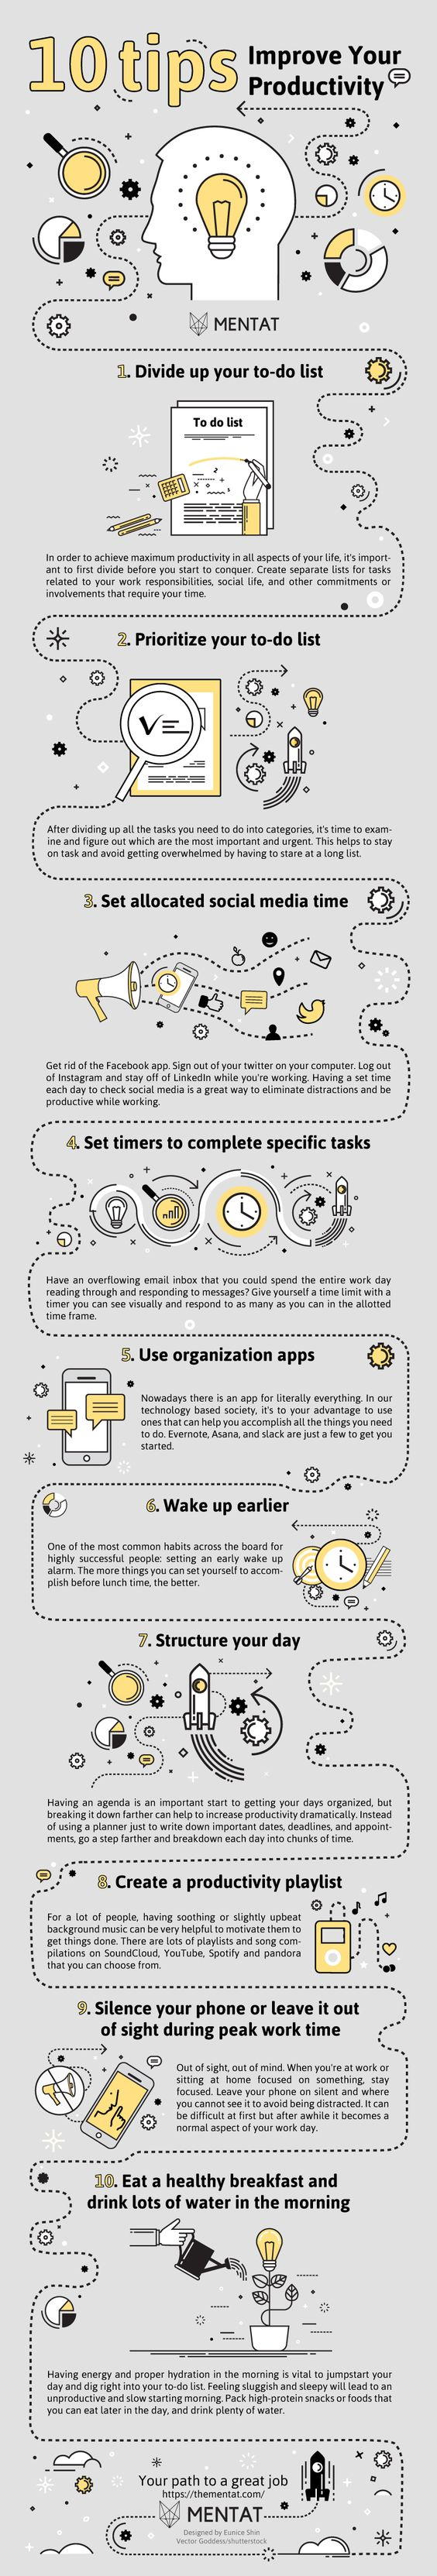 infographic-10-tips-improve-your-productivity_5873c8ab4e0df